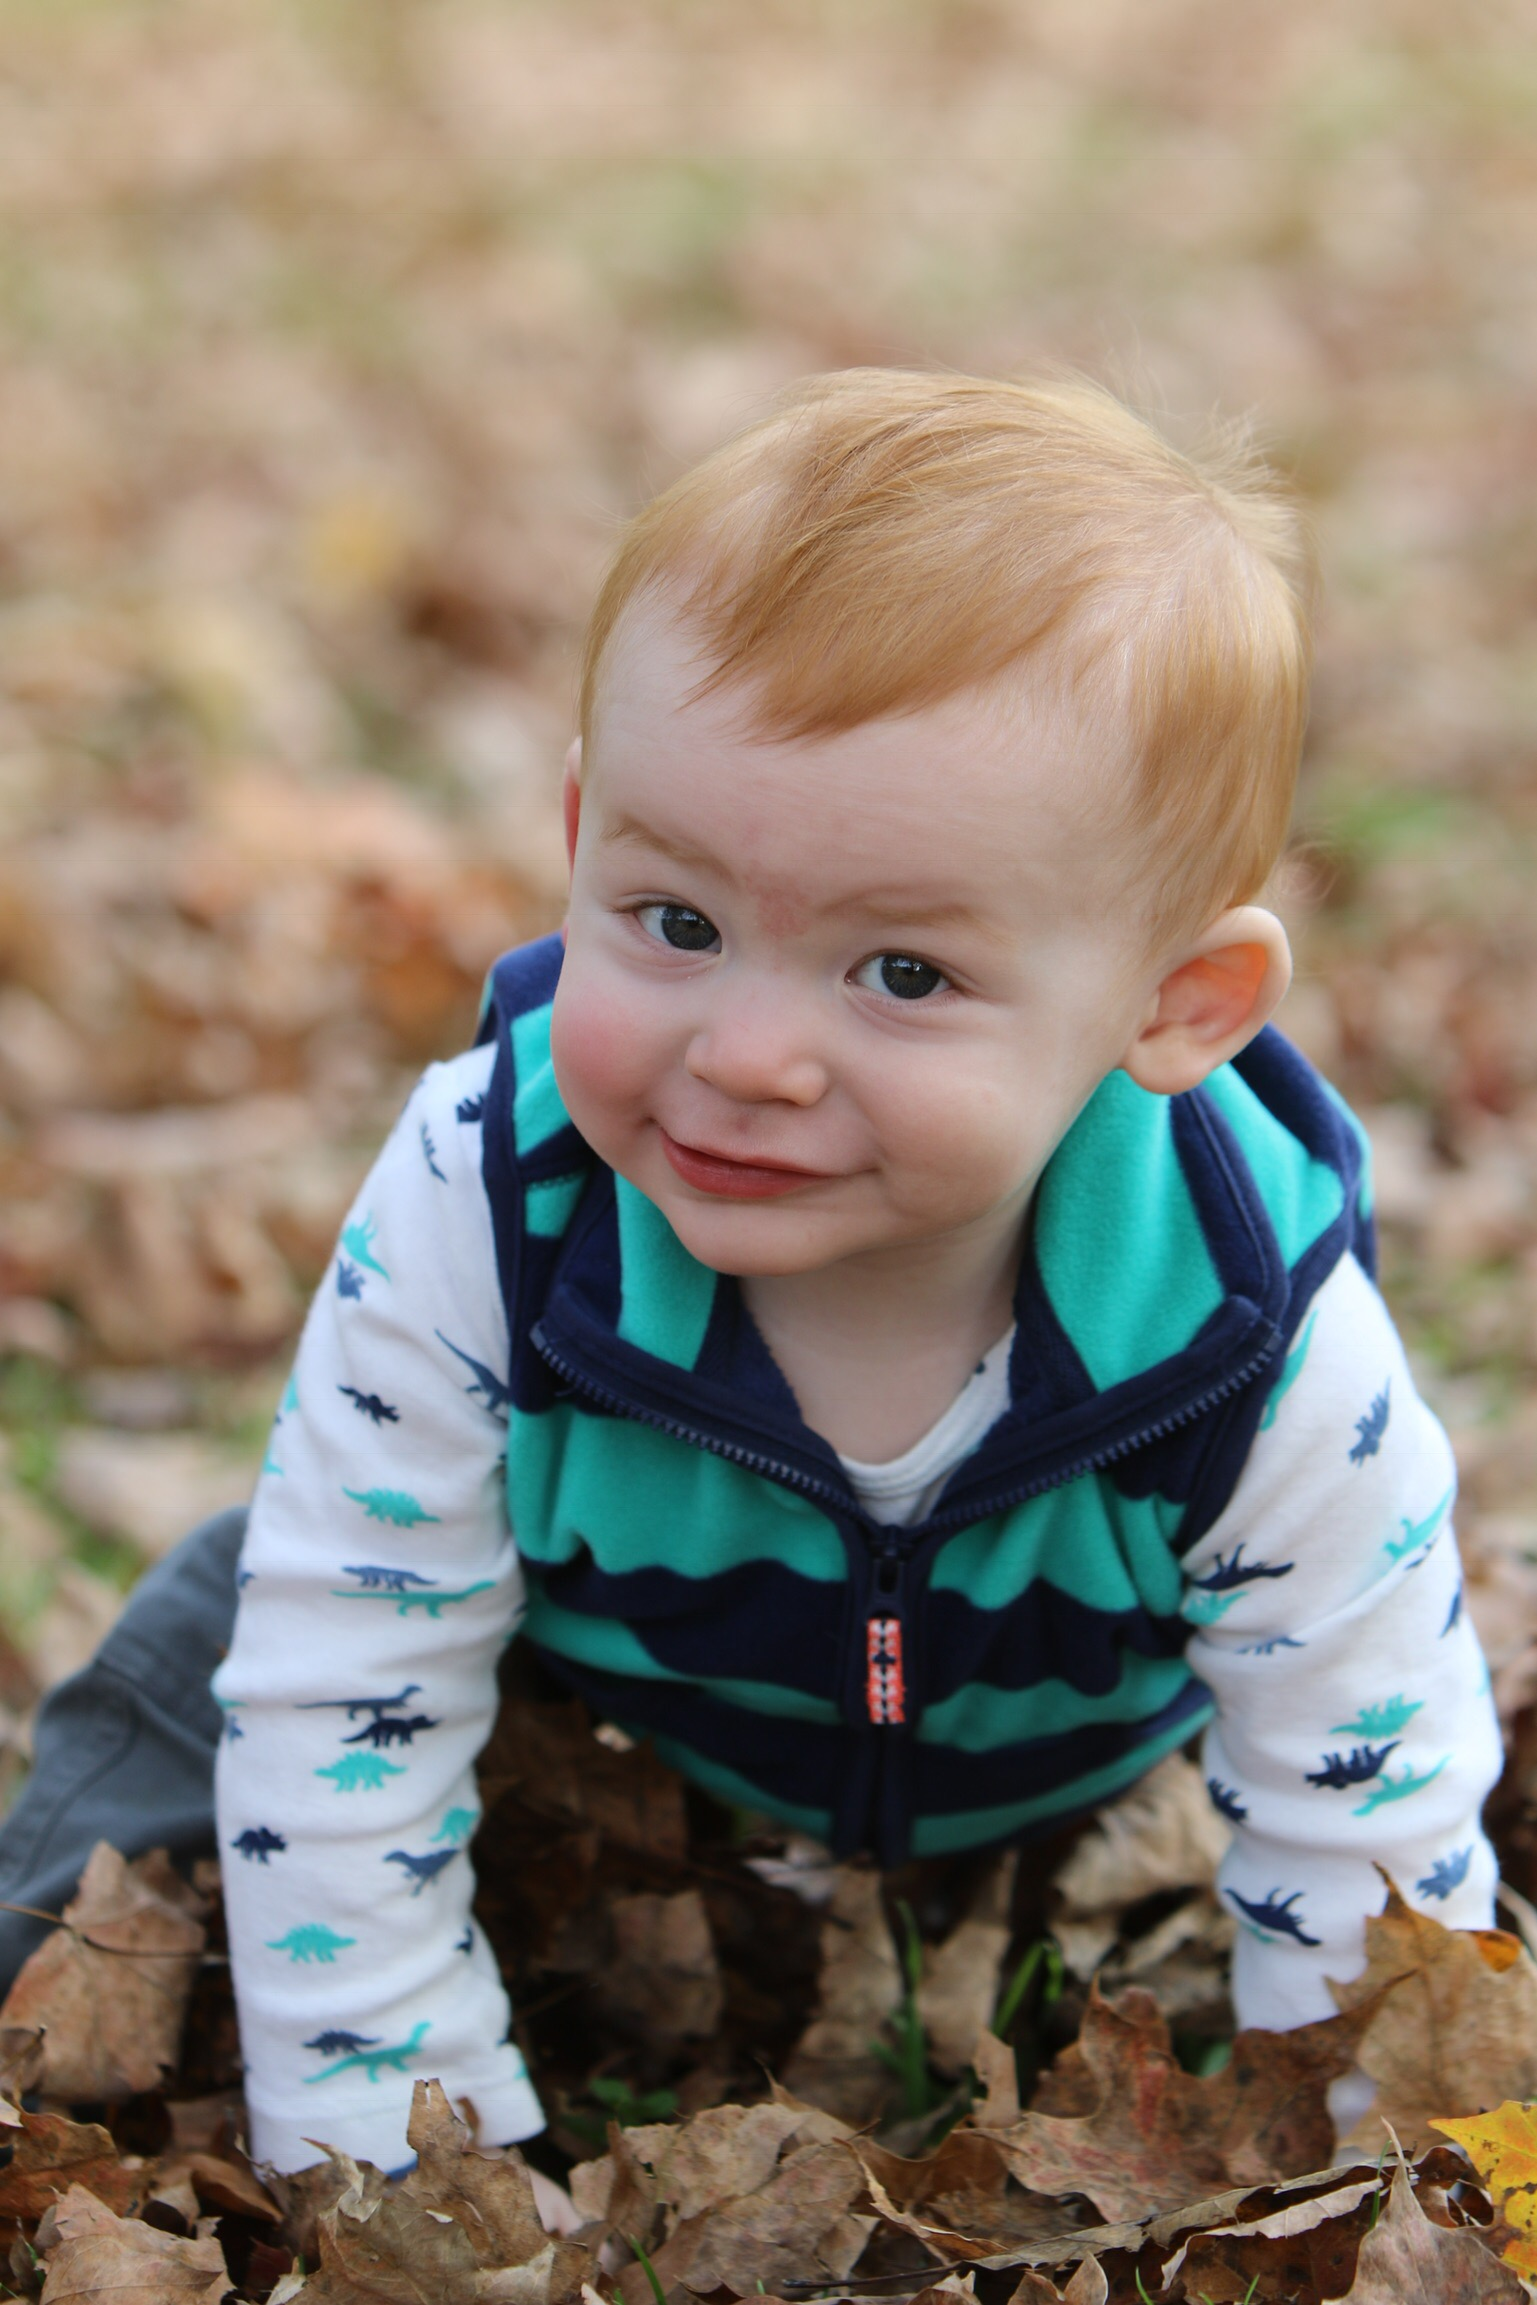 Joshua, almost 1 whole year, playing in the leaves (photo by Carla Roehner)